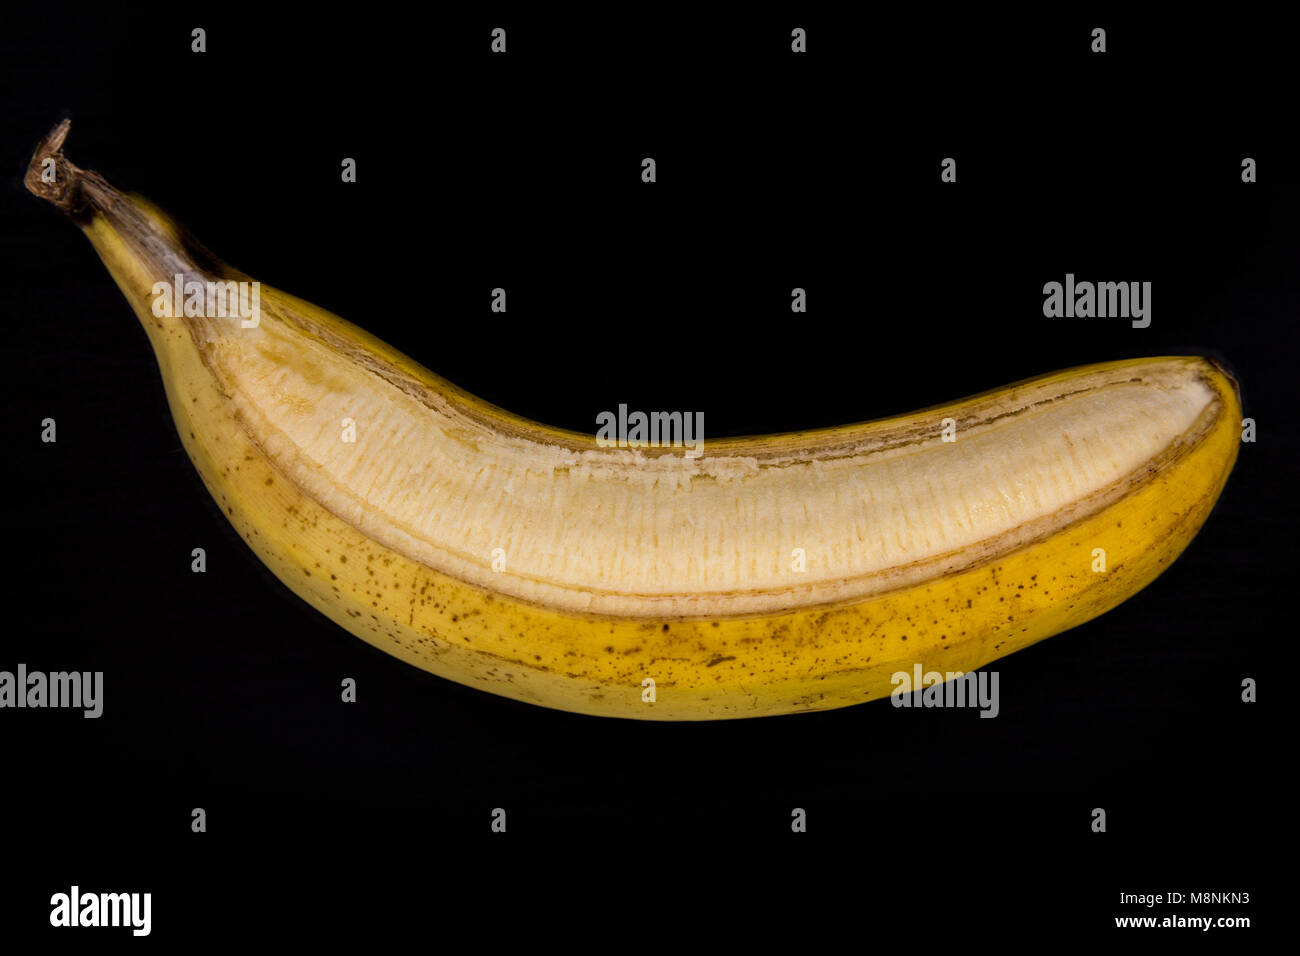 banana-with-part-of-the-skin-removed-rev